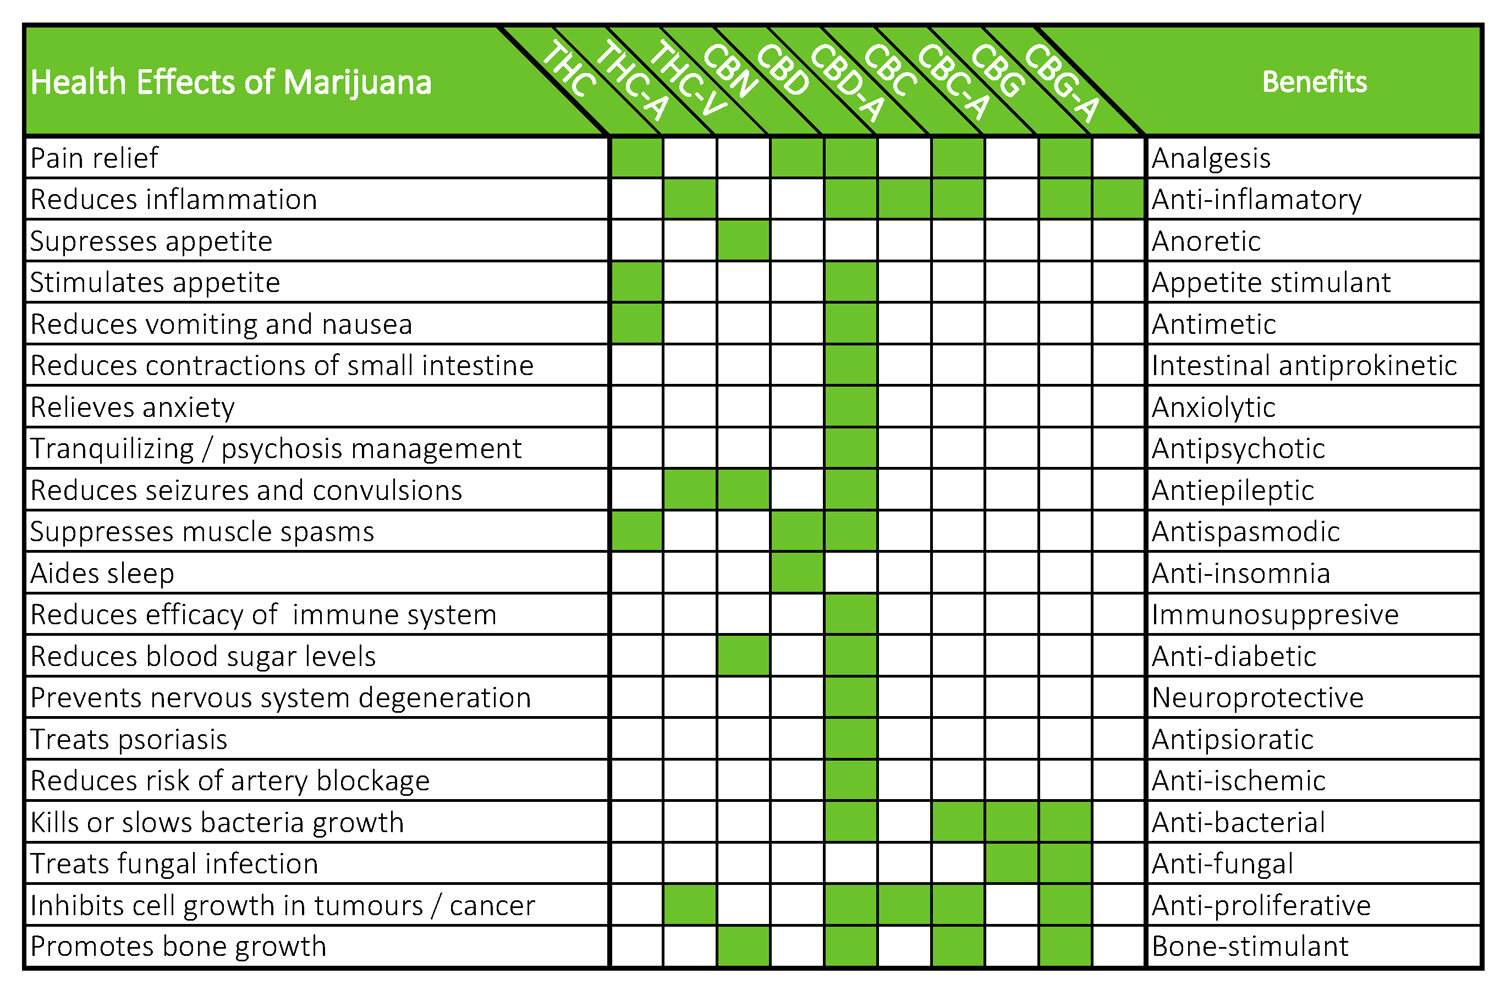 Health effects and benefits of Marijuana.